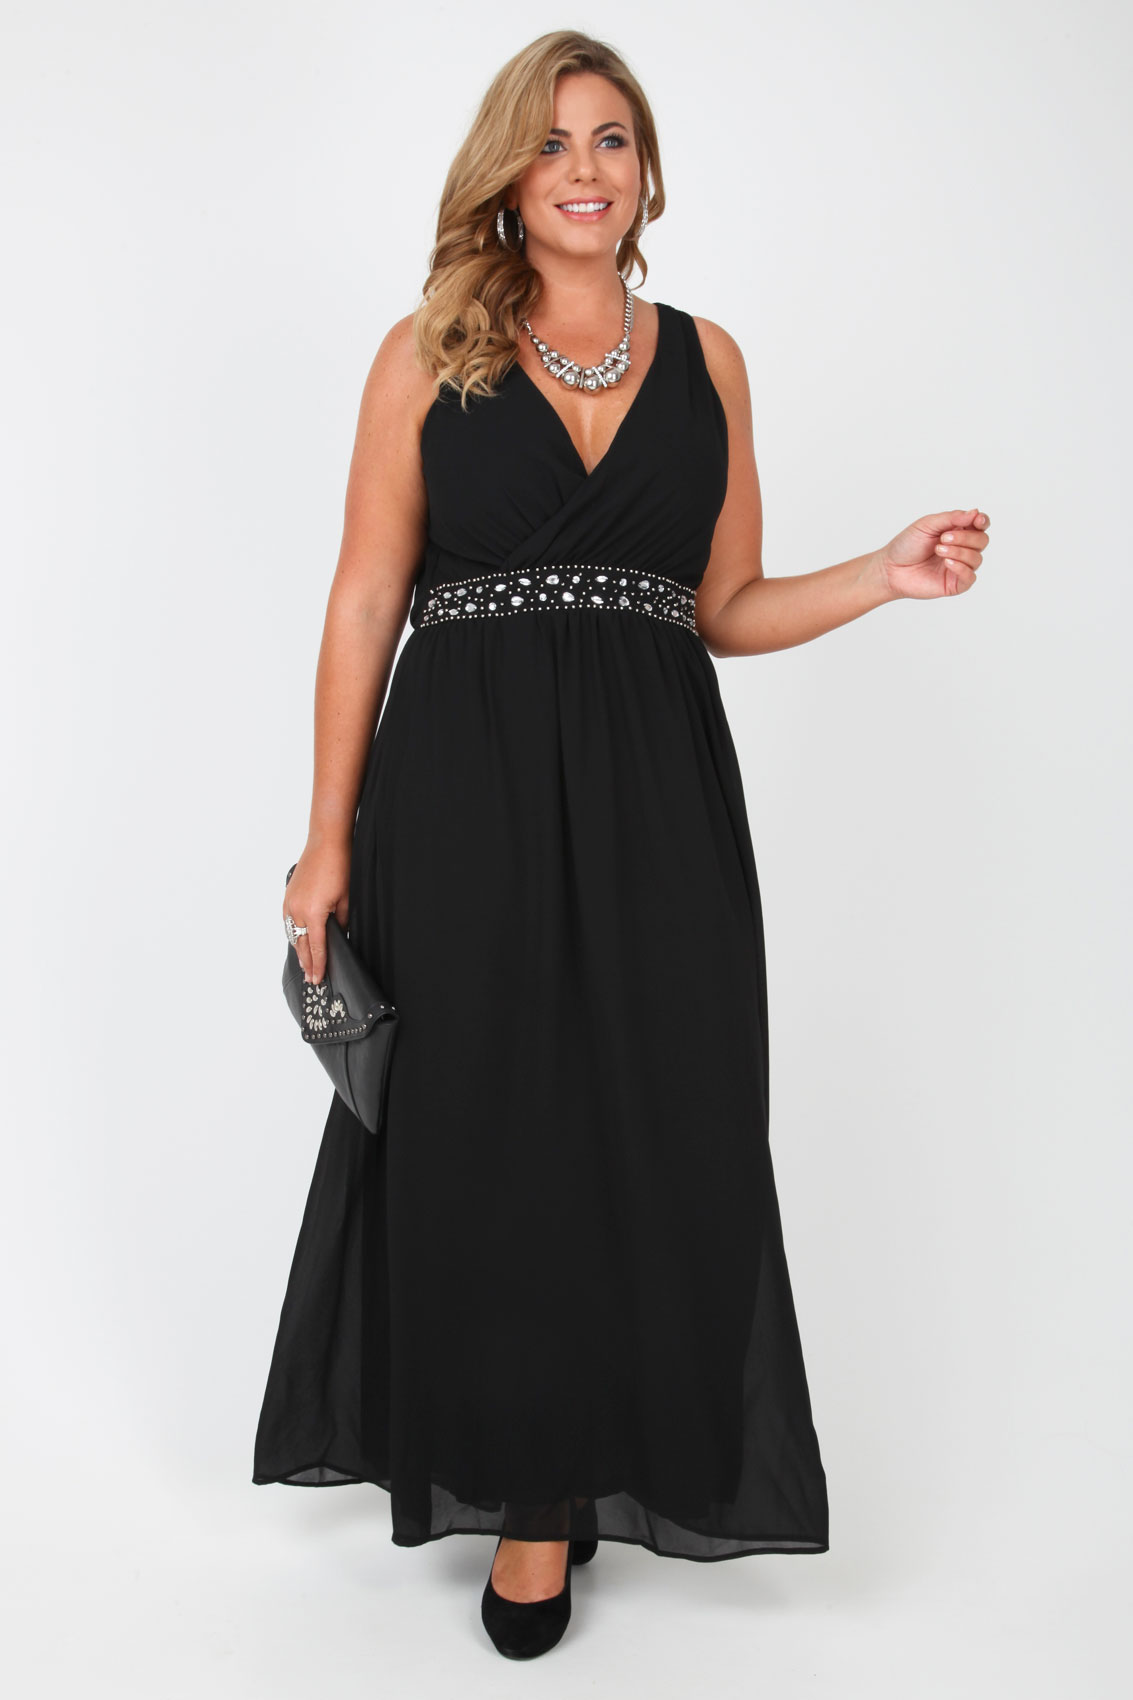 Shop plus size dresses for women with wholesale cheap price and fast delivery, and find more womens cute sexy trendy plus size dresses & bulk plus size dresses online with drop shipping. VIP Quick Shop. Plus Size Lace Panel Peplum Dress - Black 4x. VIP Plus Size High Waist Maxi Dress; Maxi Overlay Dress; Plus Size.